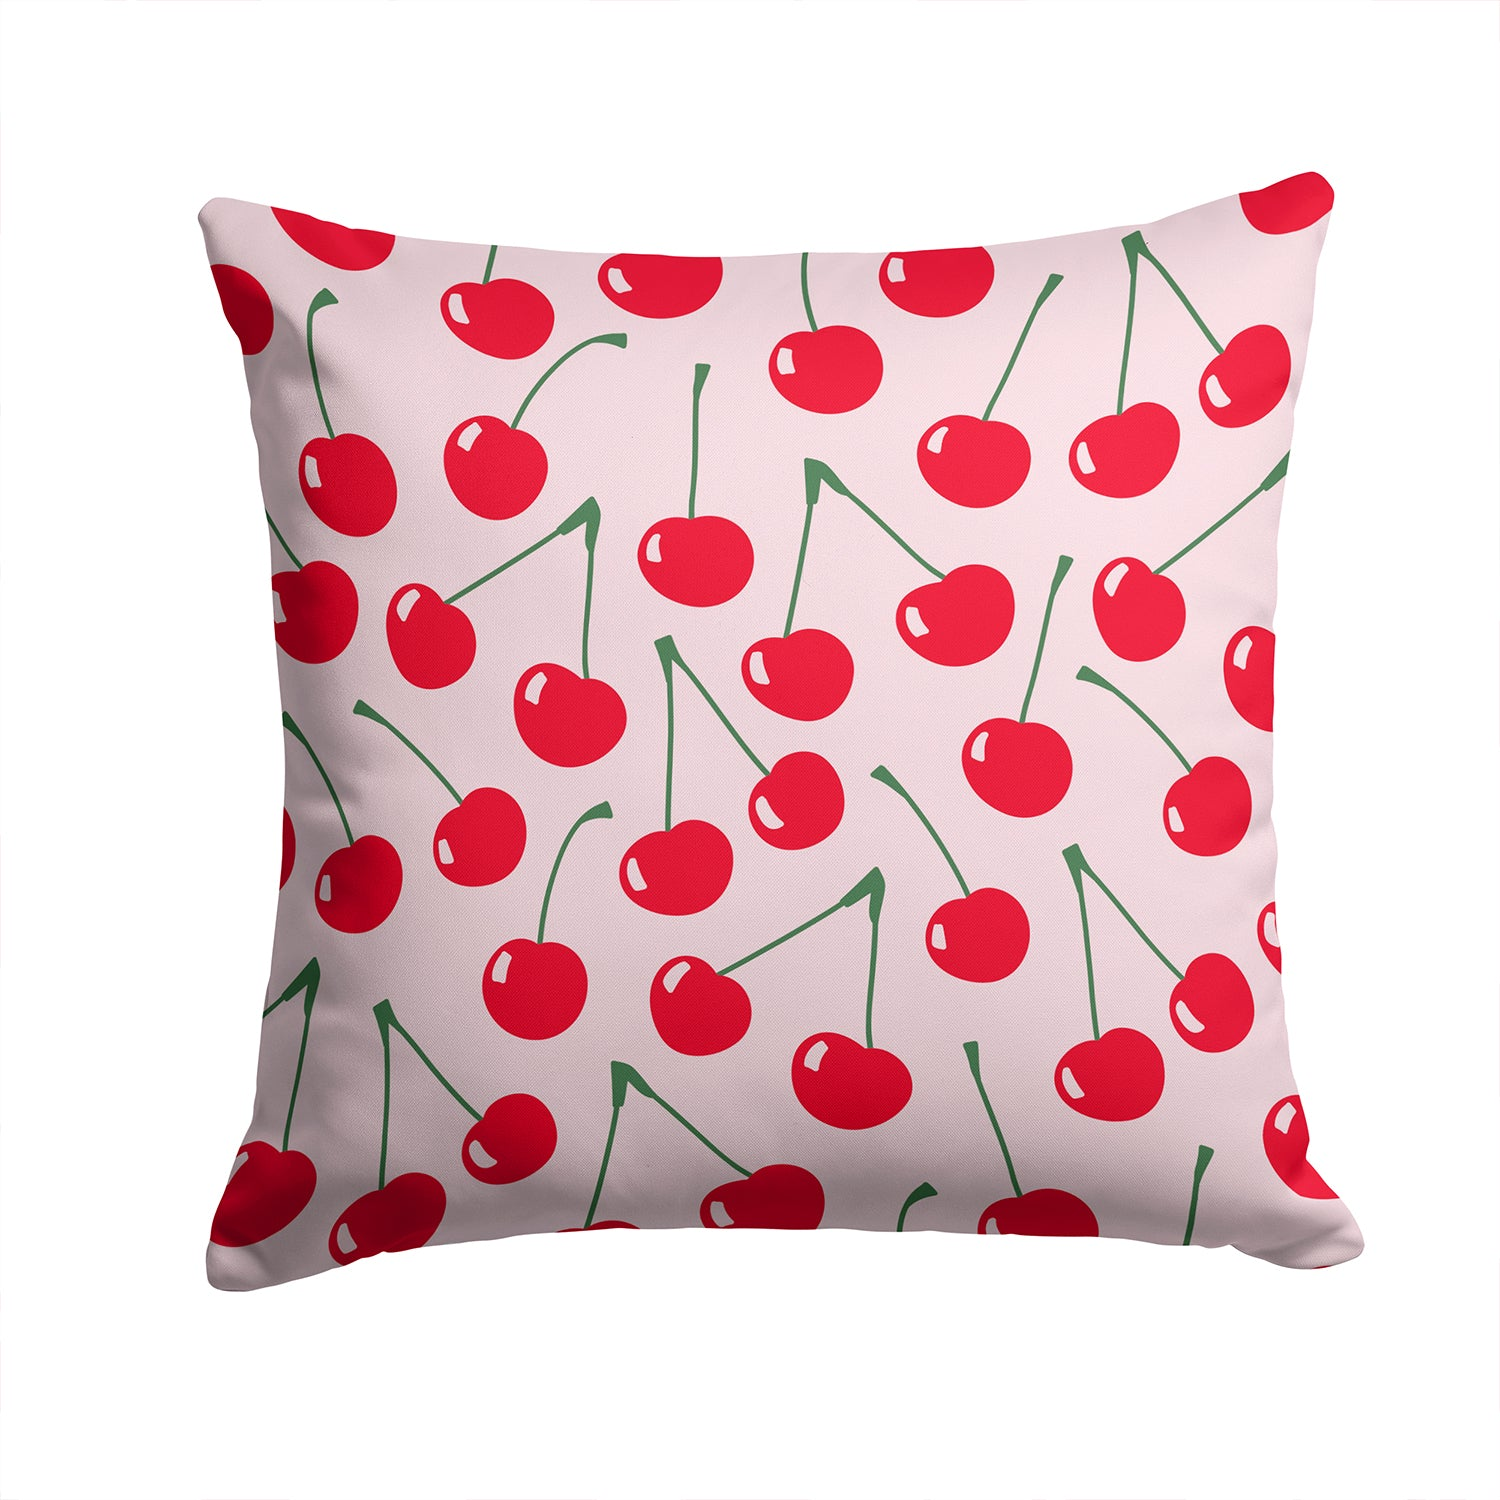 Cherries on Pink Fabric Decorative Pillow BB5139PW1414 by Caroline's Treasures